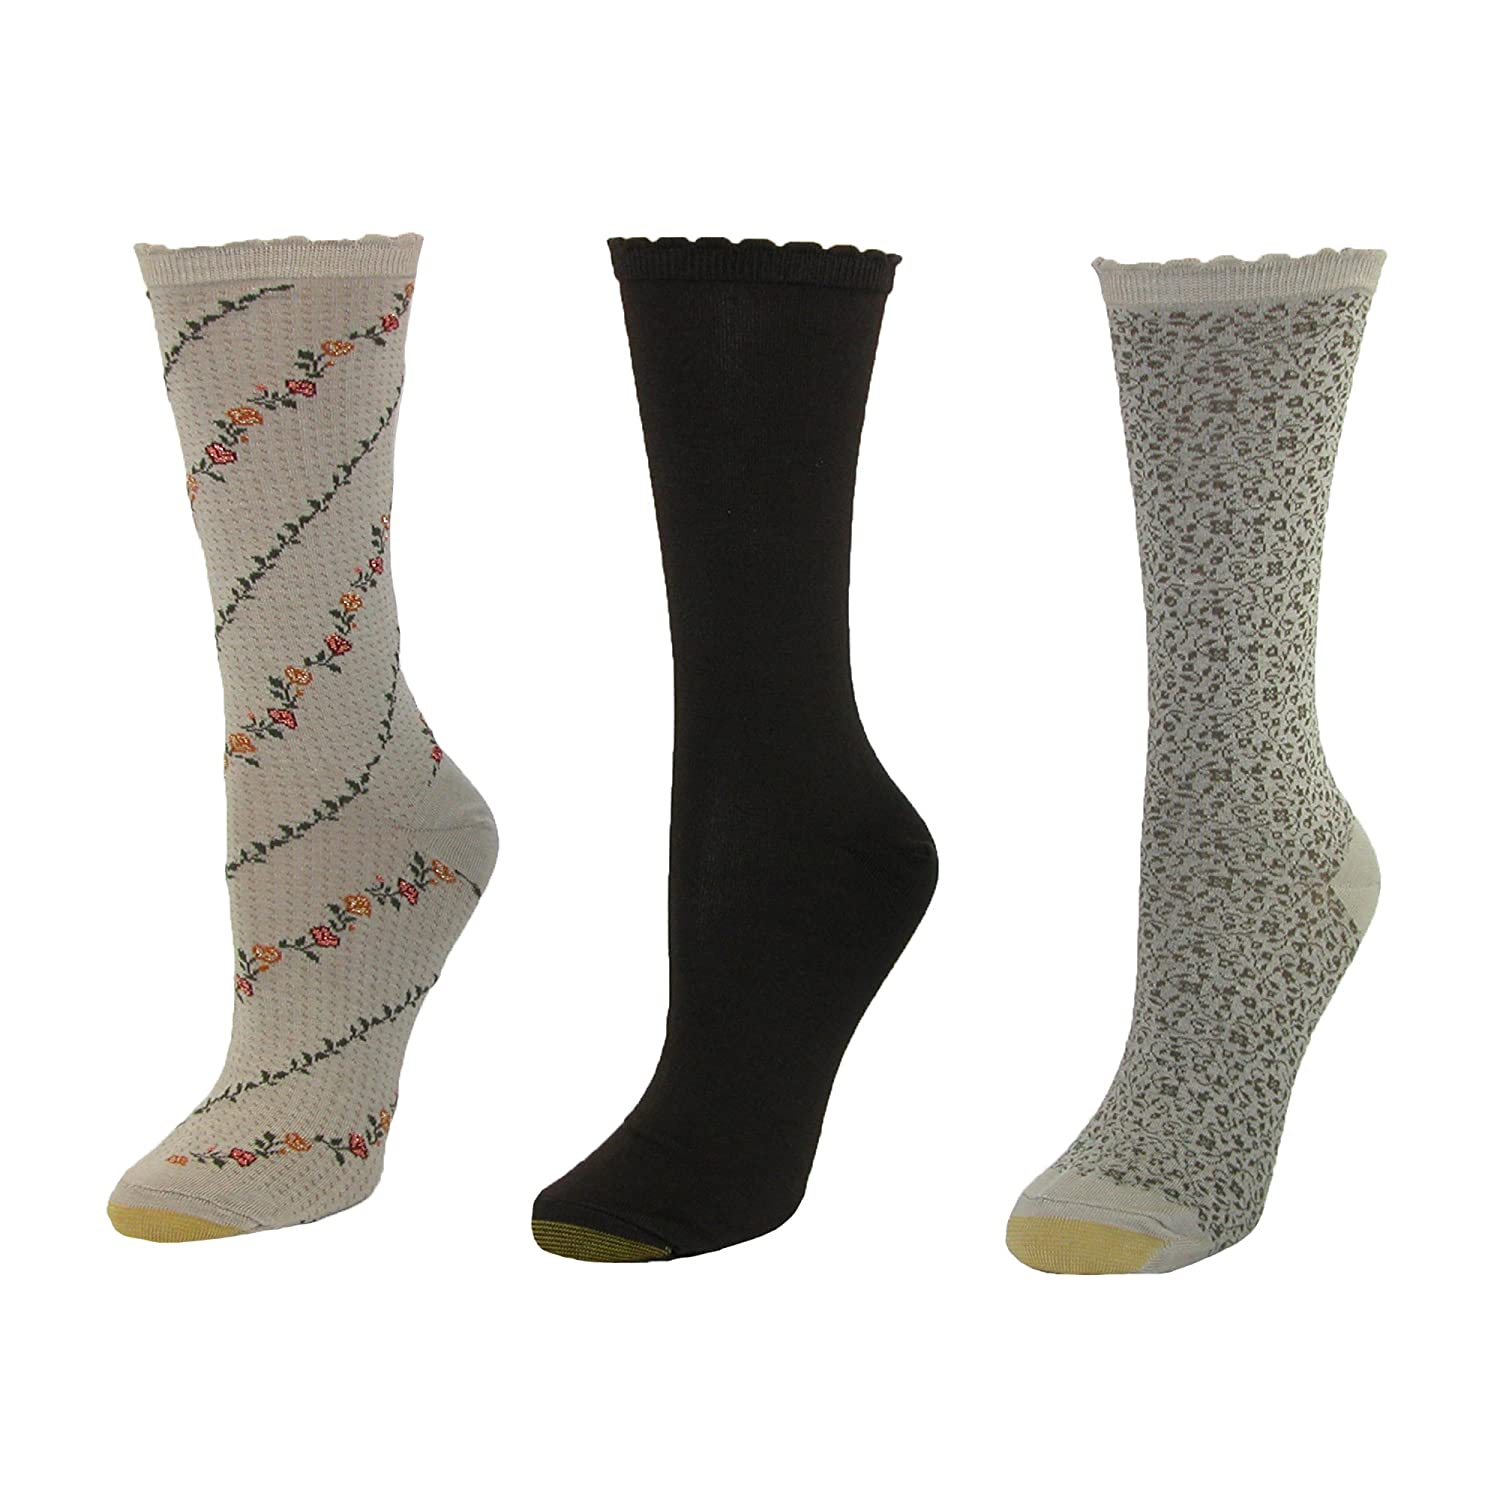 Gold Toe Women's Plus-Size 3 Pair Pack Crew Socks